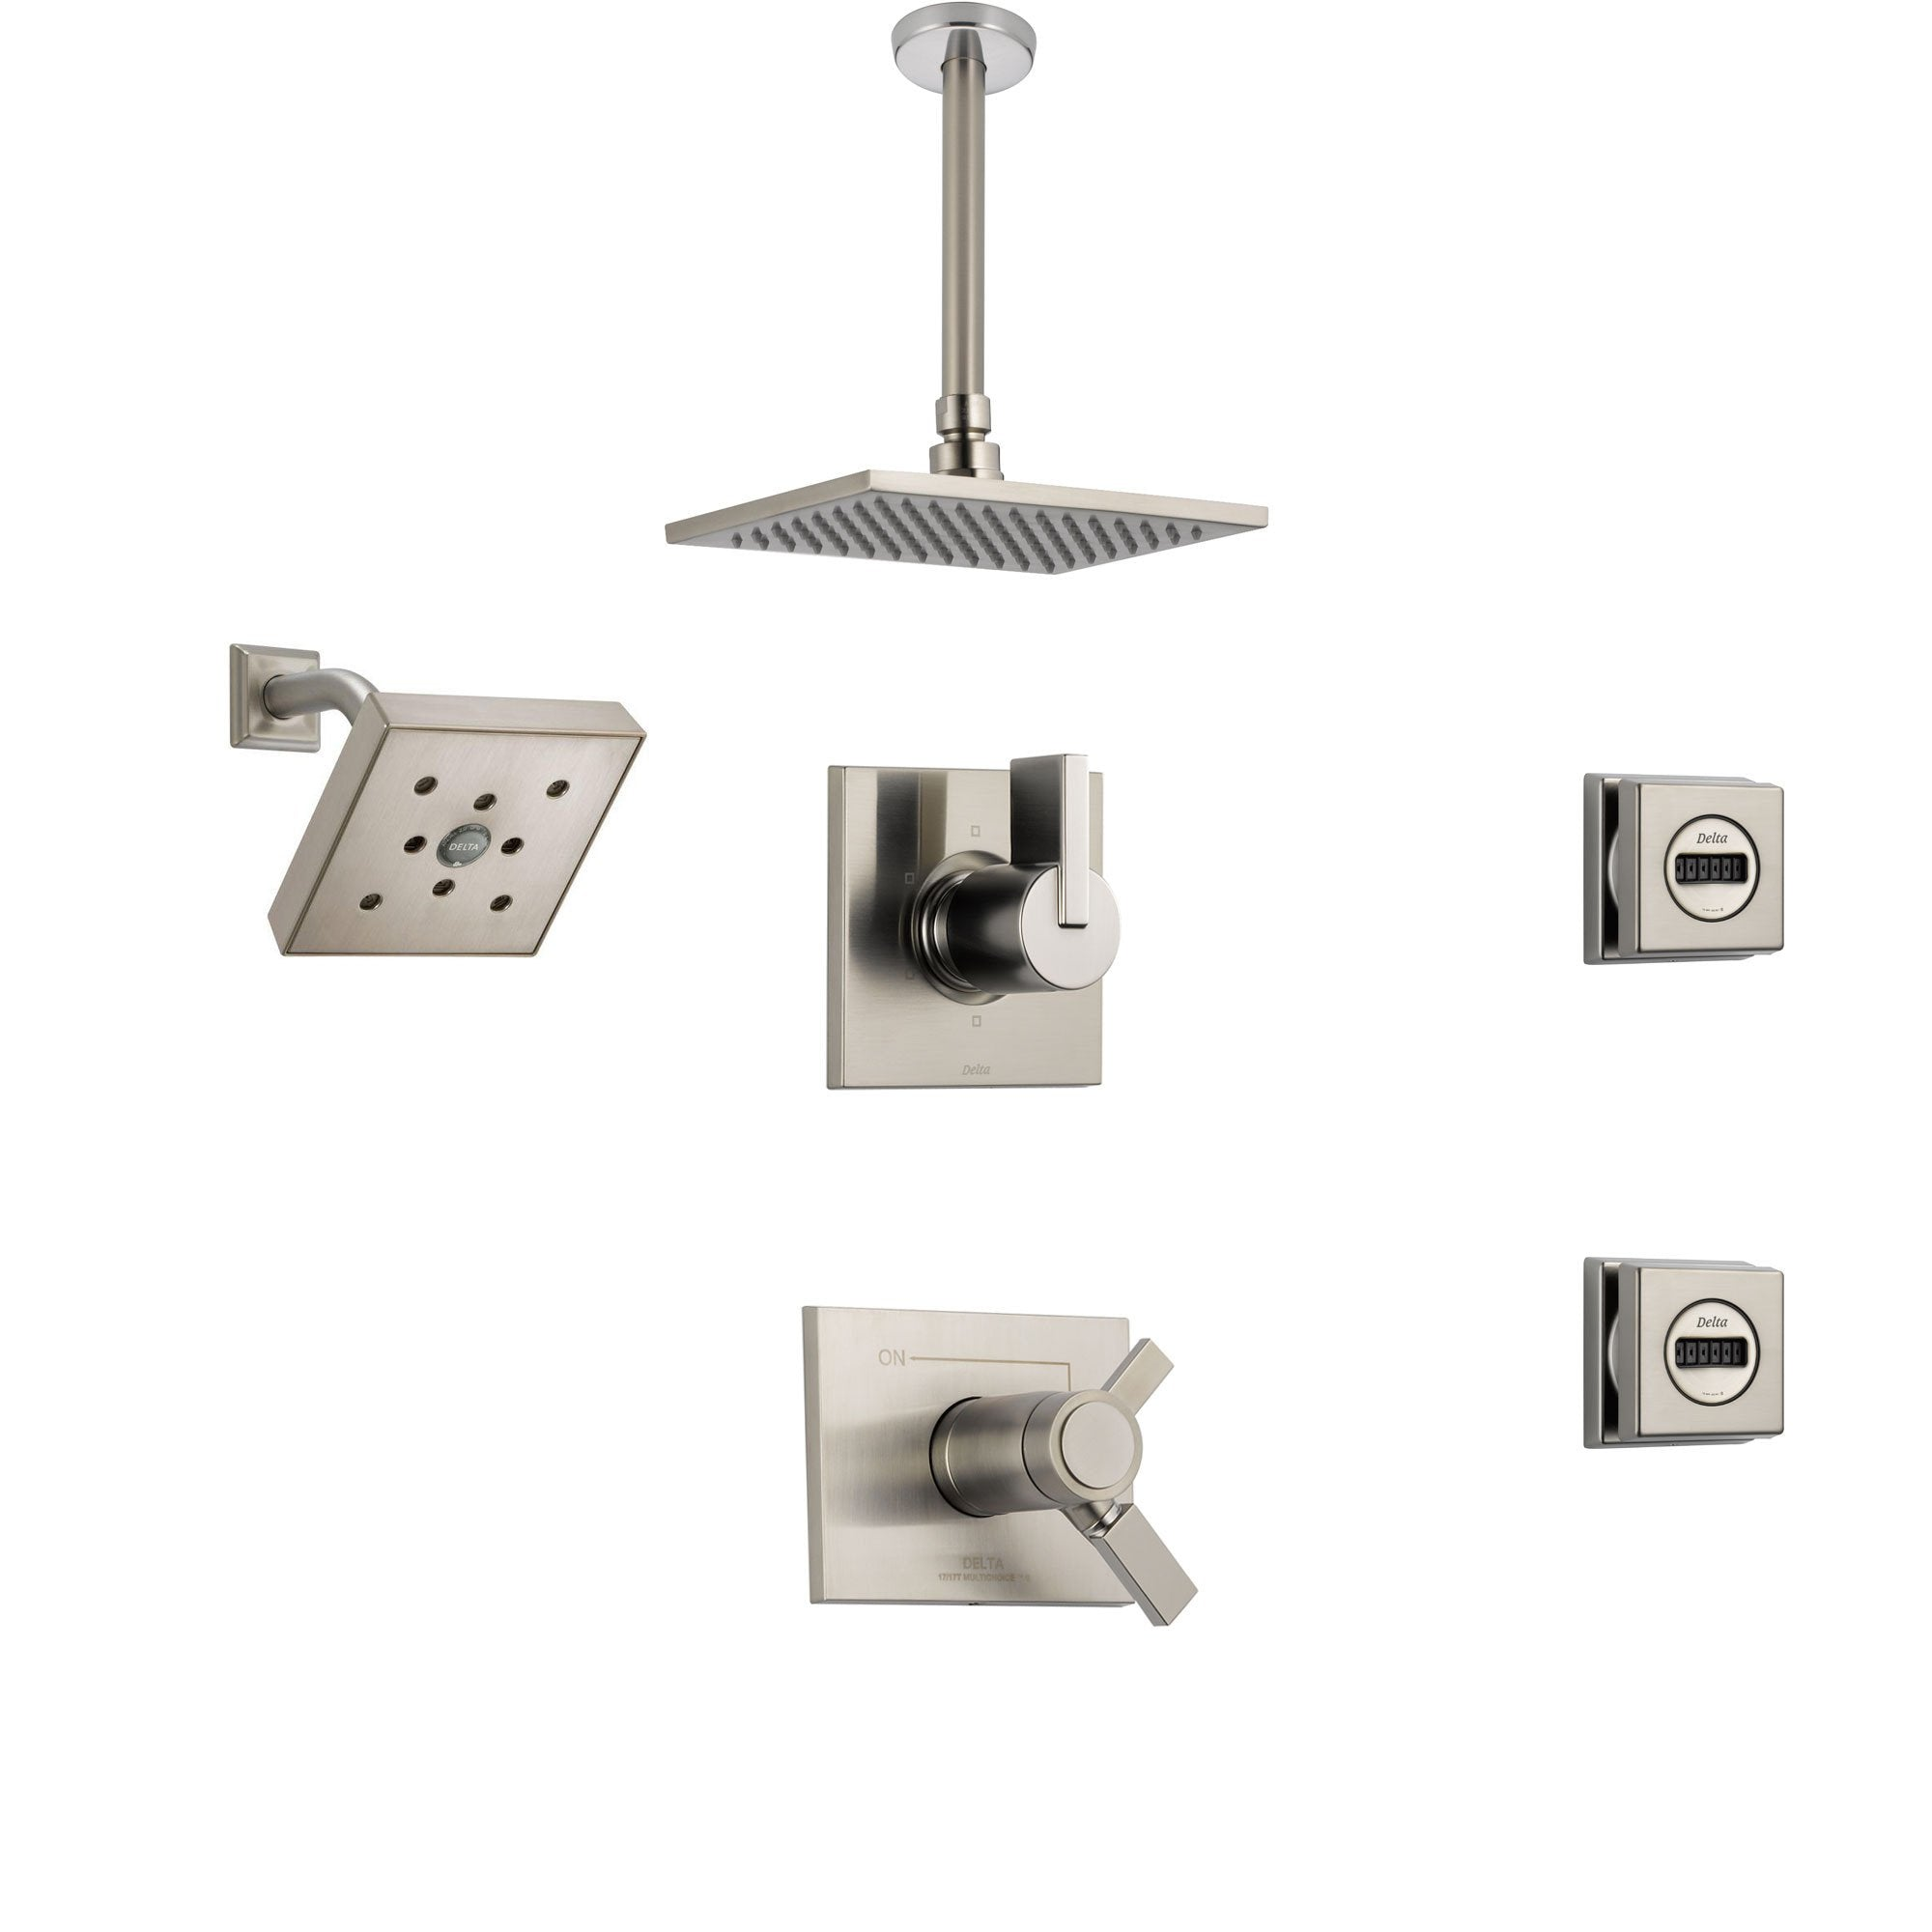 Delta Vero Stainless Steel Shower System with Thermostatic Shower Handle, 6-setting Diverter, Large Square Rain Showerhead, Modern Wall Mount Showerhead, and 2 Body Sprays SS17T5395SS